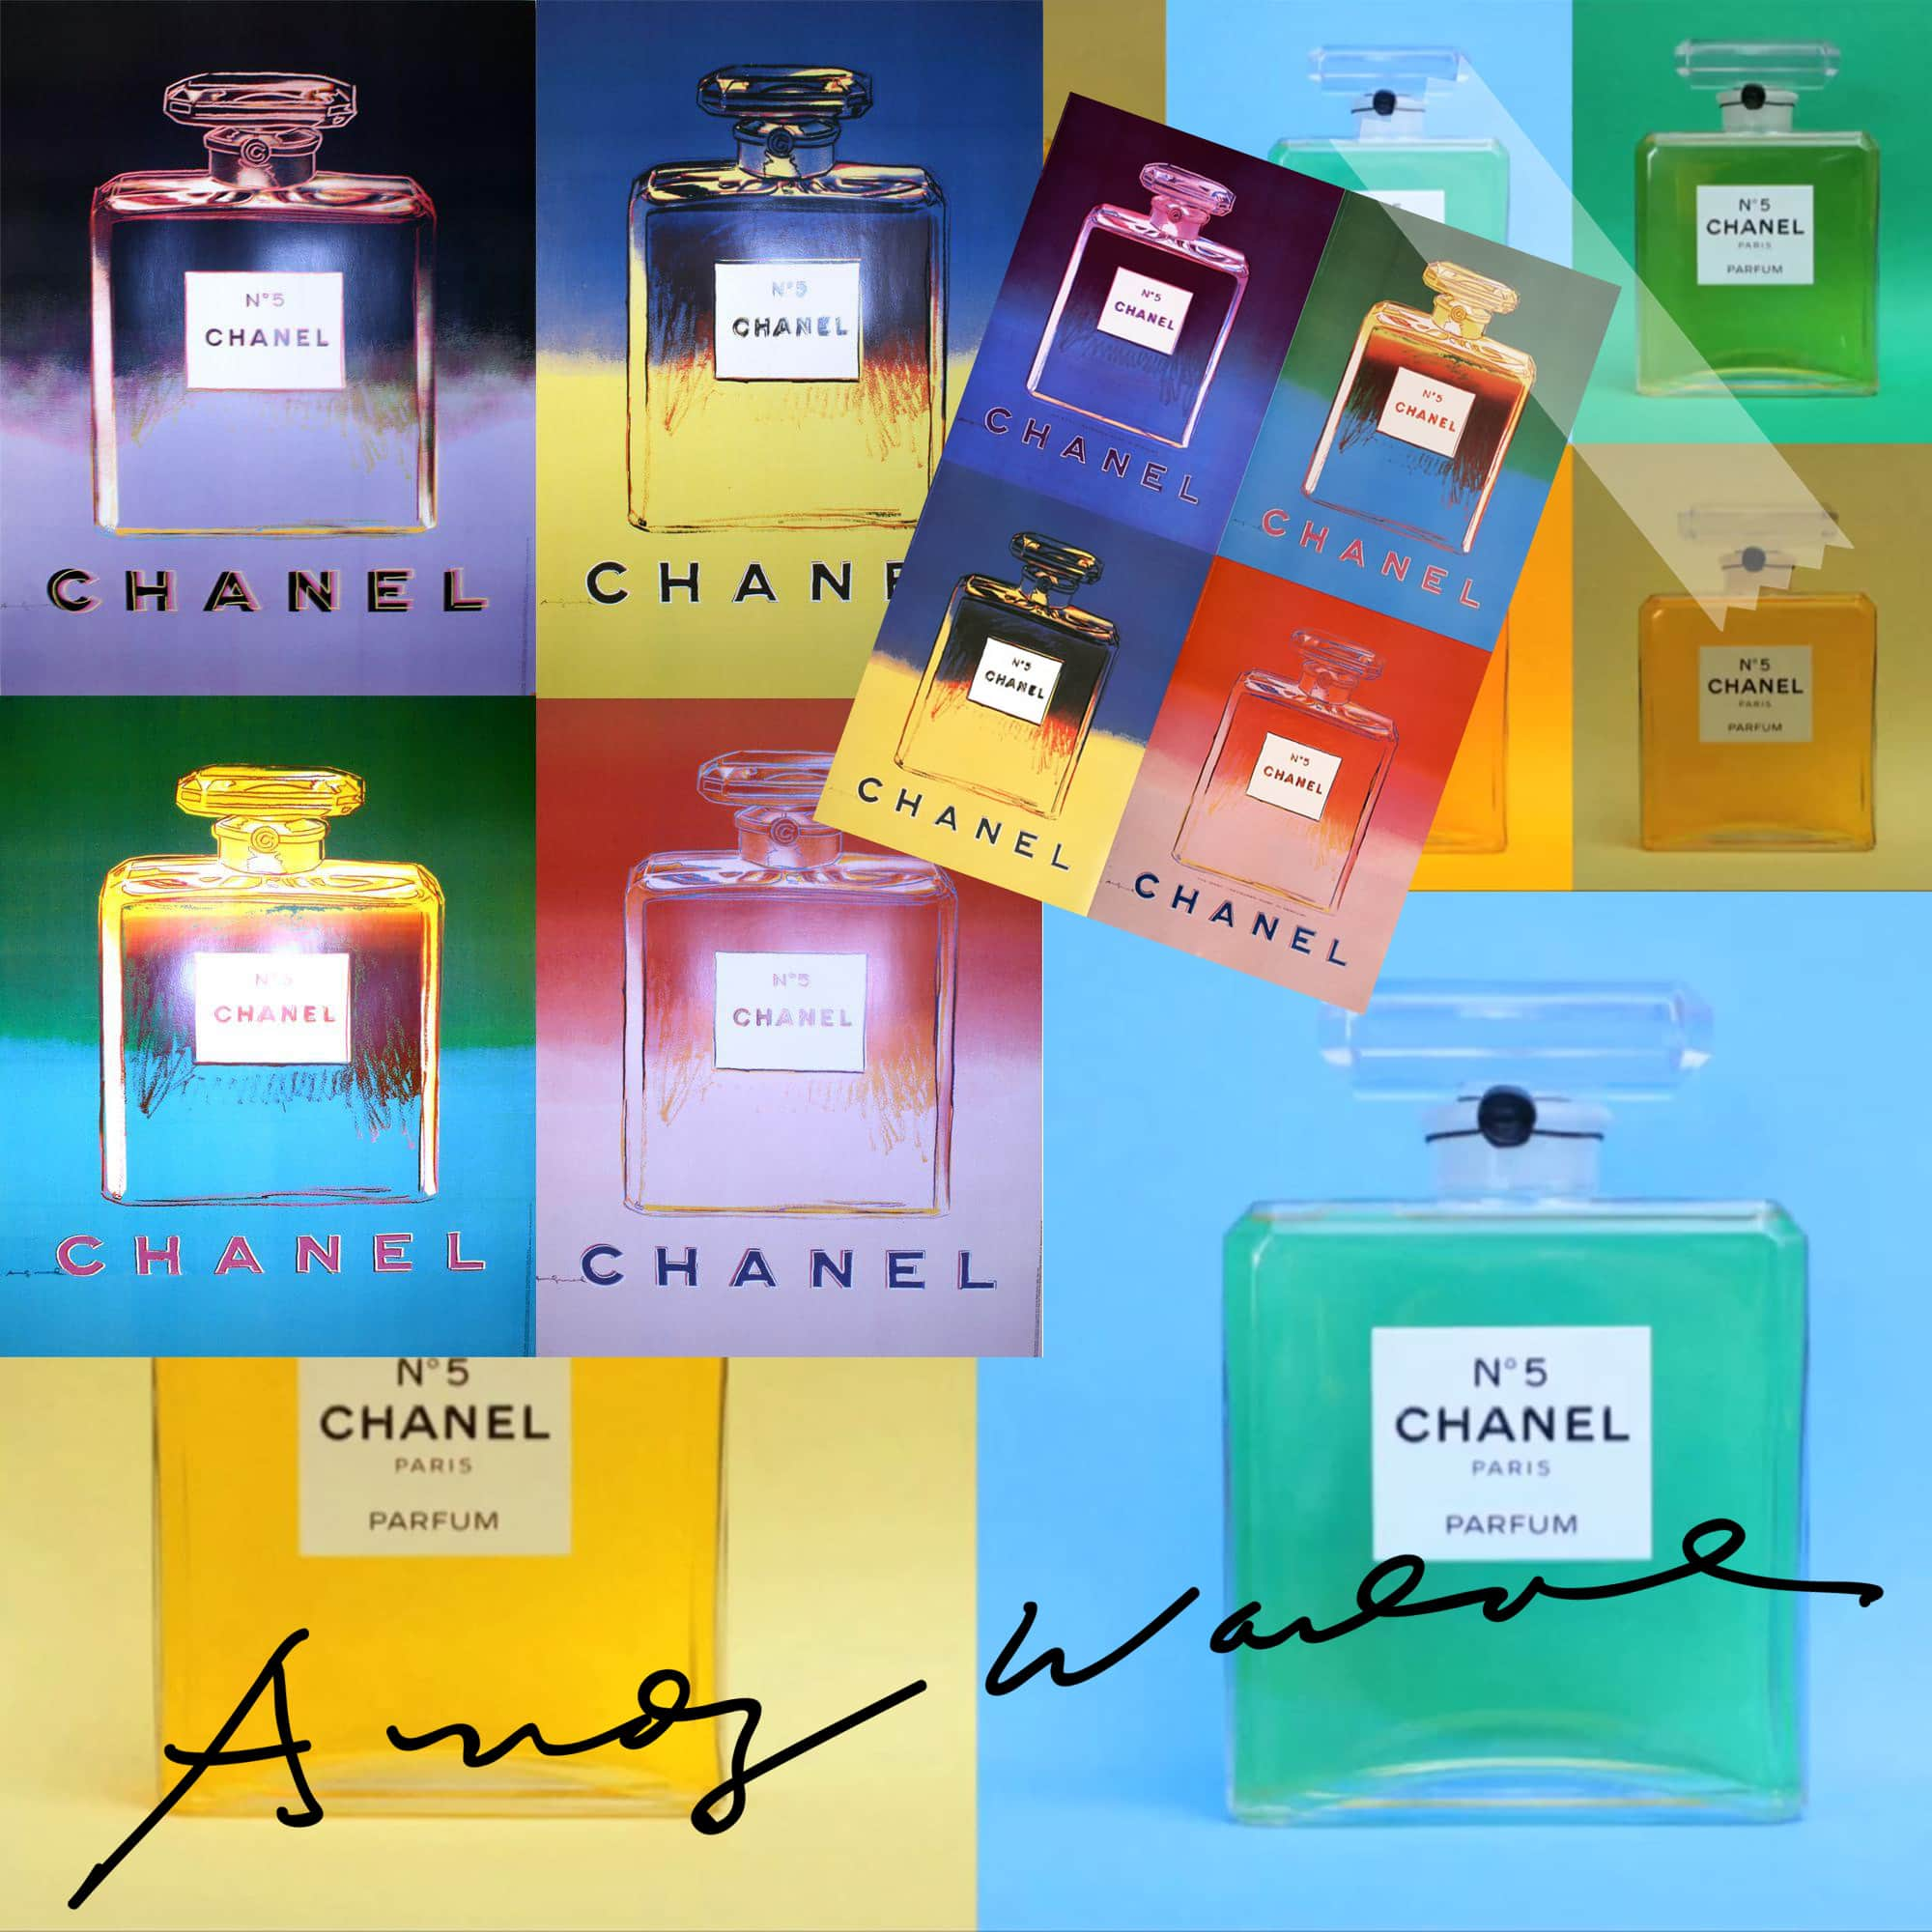 CHANEL 5 perfume - Tresors INPI - Andy Warhol for CHANEL by RUNWAY MAGAZINE